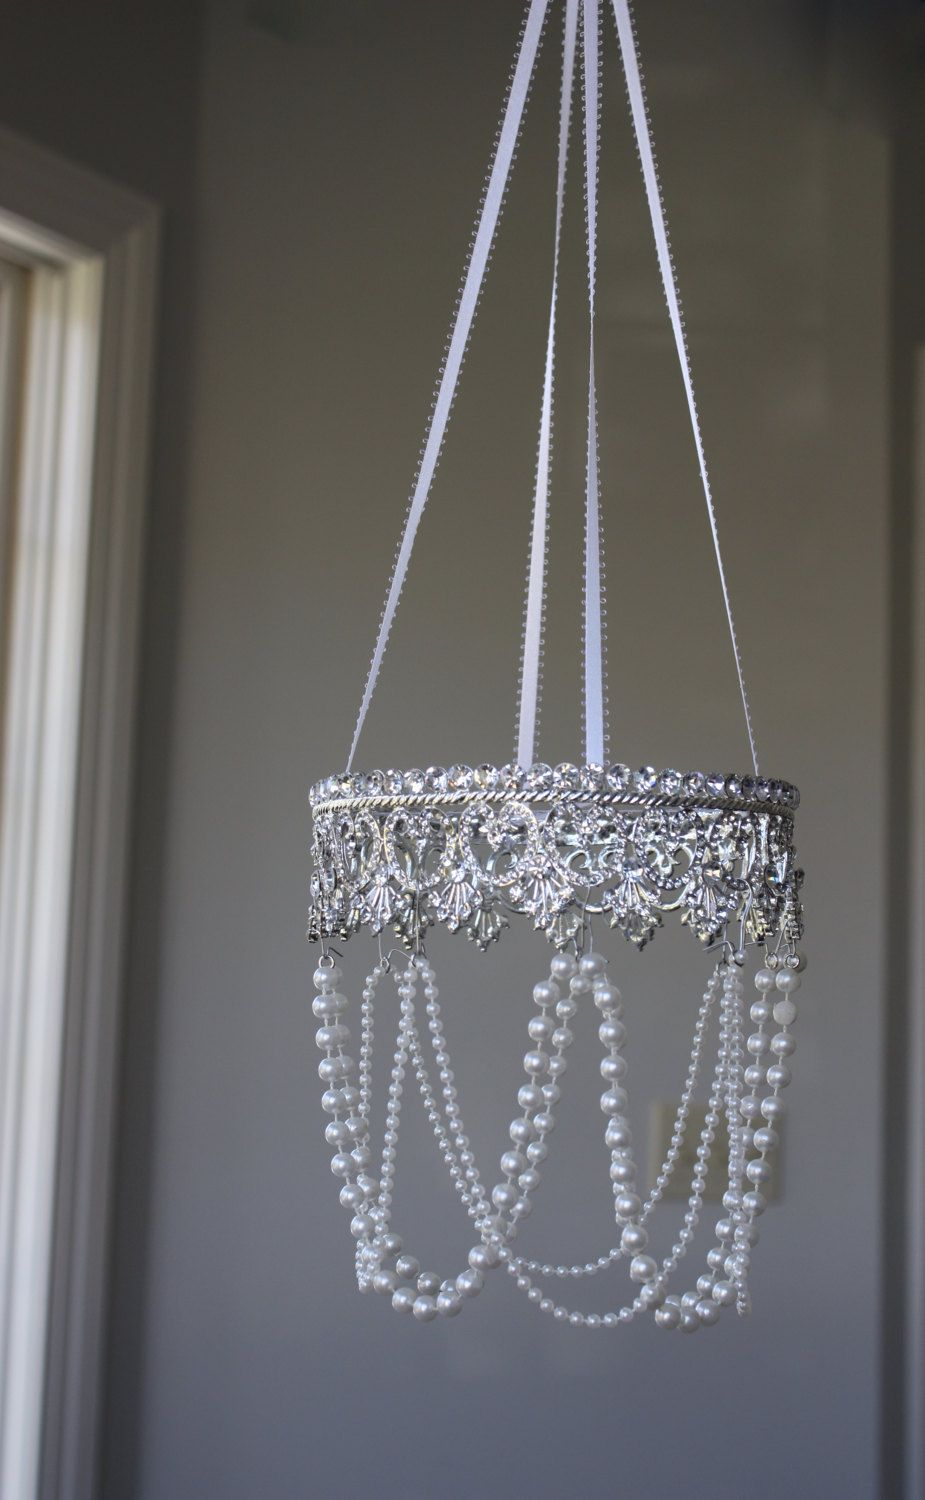 Crown Nursery Mobile Pearl Chandelier Ribbon Bling Diva Crystal Princess Sparkling Dazzling Tiara Jeweled Silver Baby Little Girl Crib Heart By Susiekays On